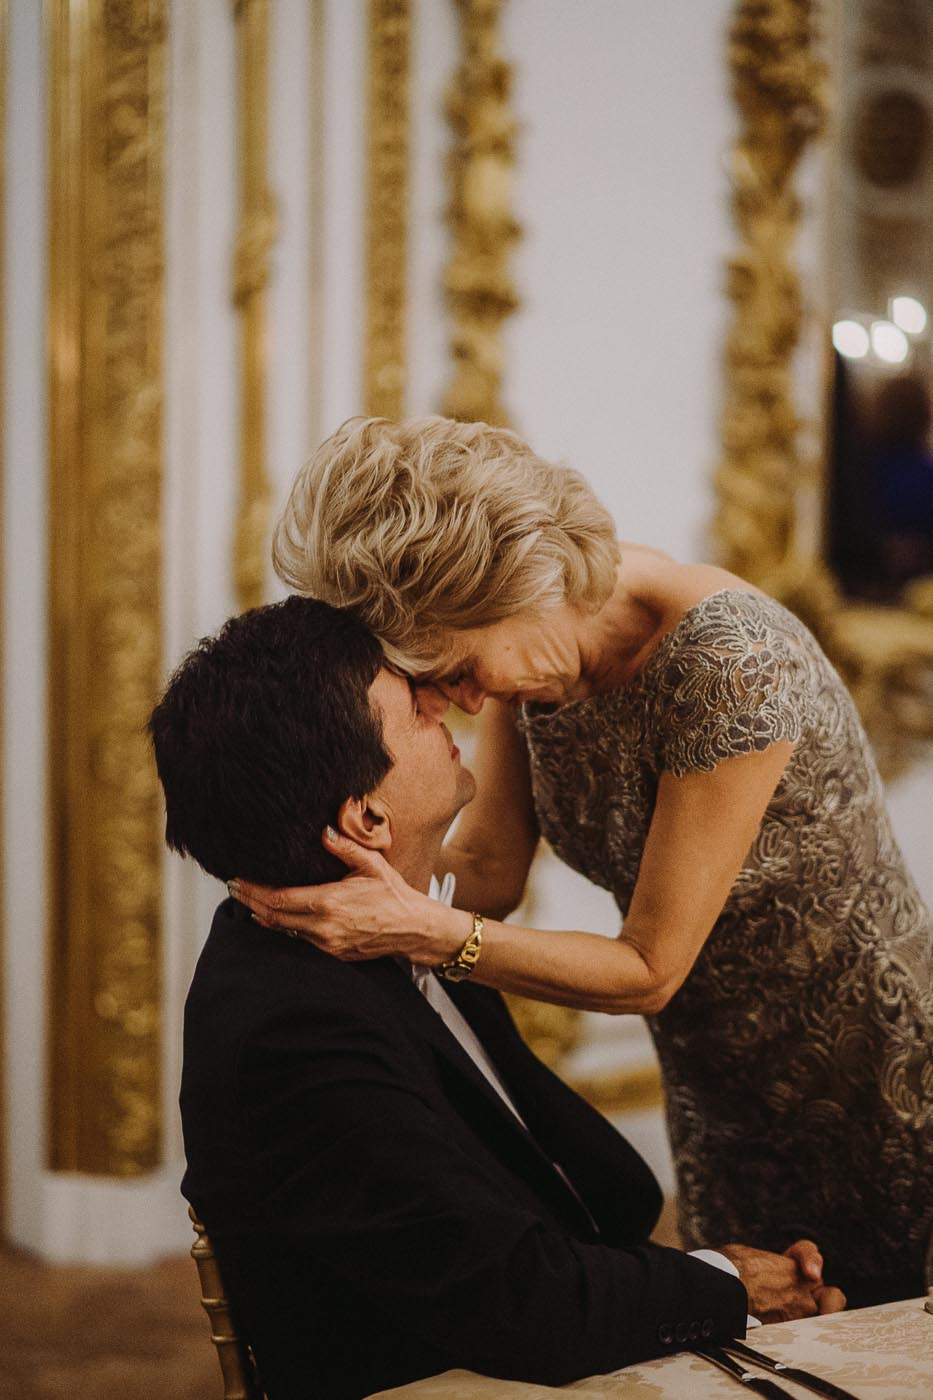 wedding photographer stadtpalais liechtenstein vienna